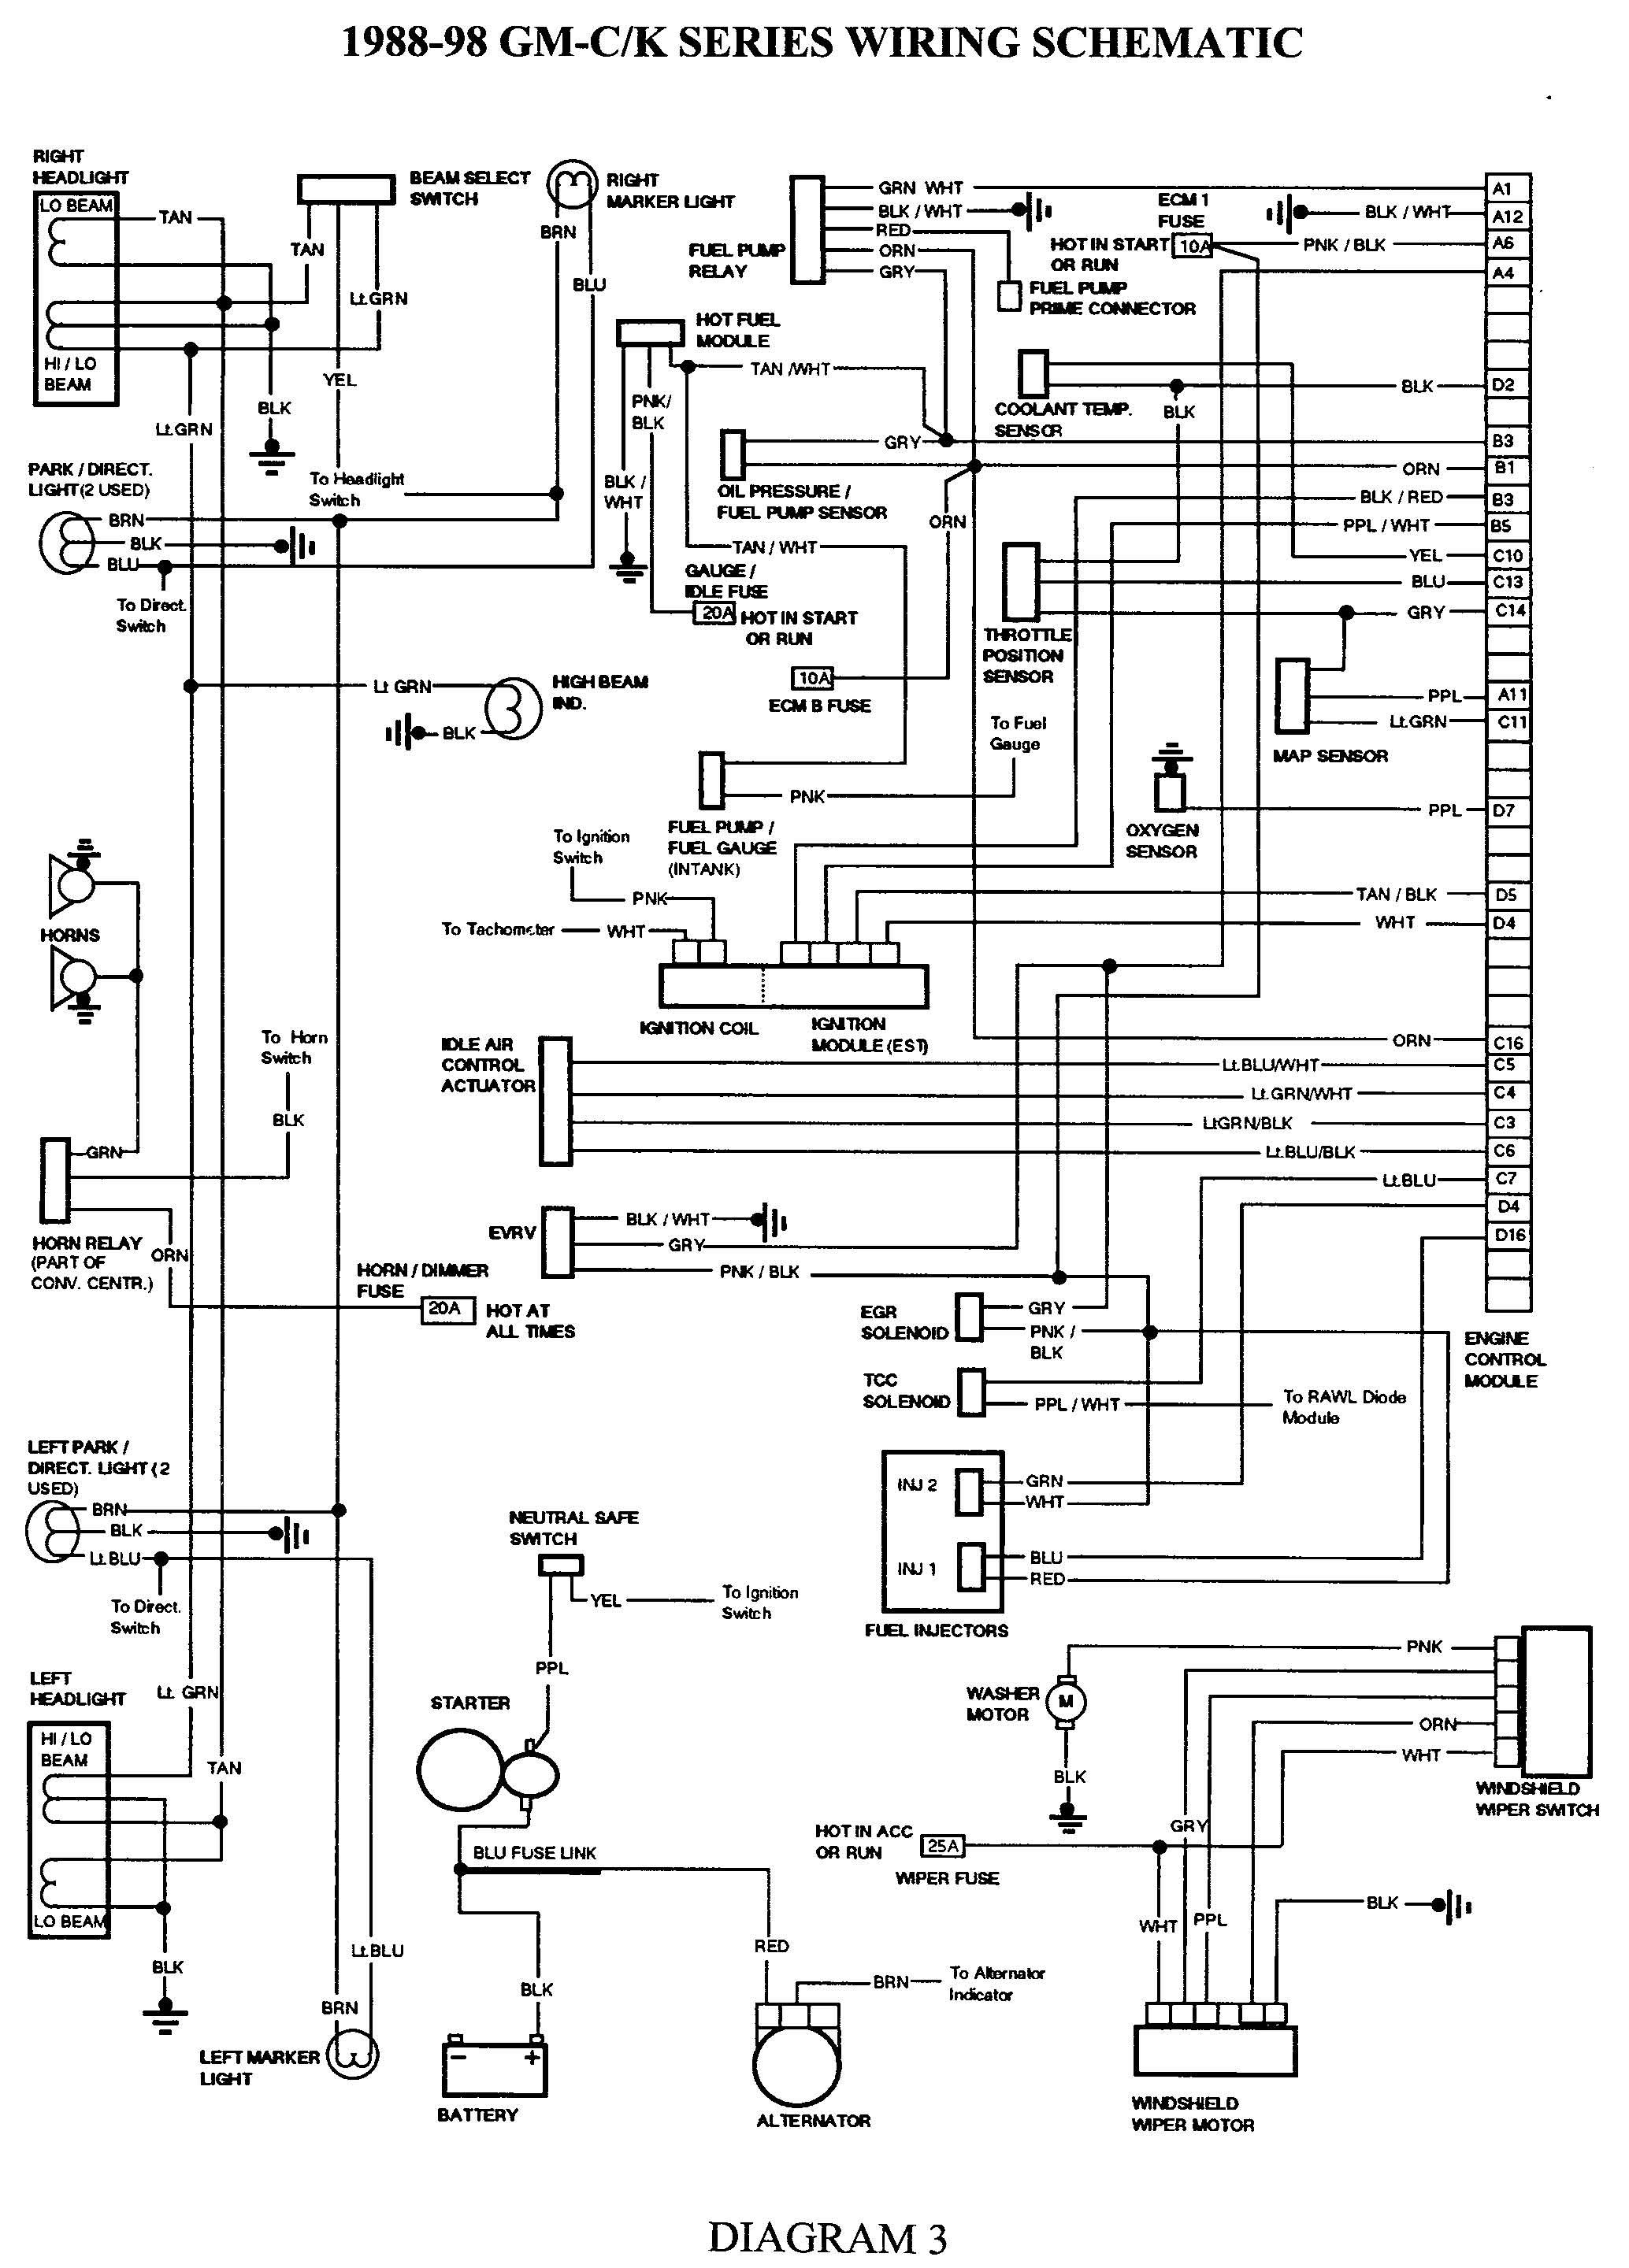 b2f2e5dbdc07dada83ef514f6d4ce3d4 gmc truck wiring diagrams on gm wiring harness diagram 88 98 kc wiring harness schematic for les paul at cos-gaming.co